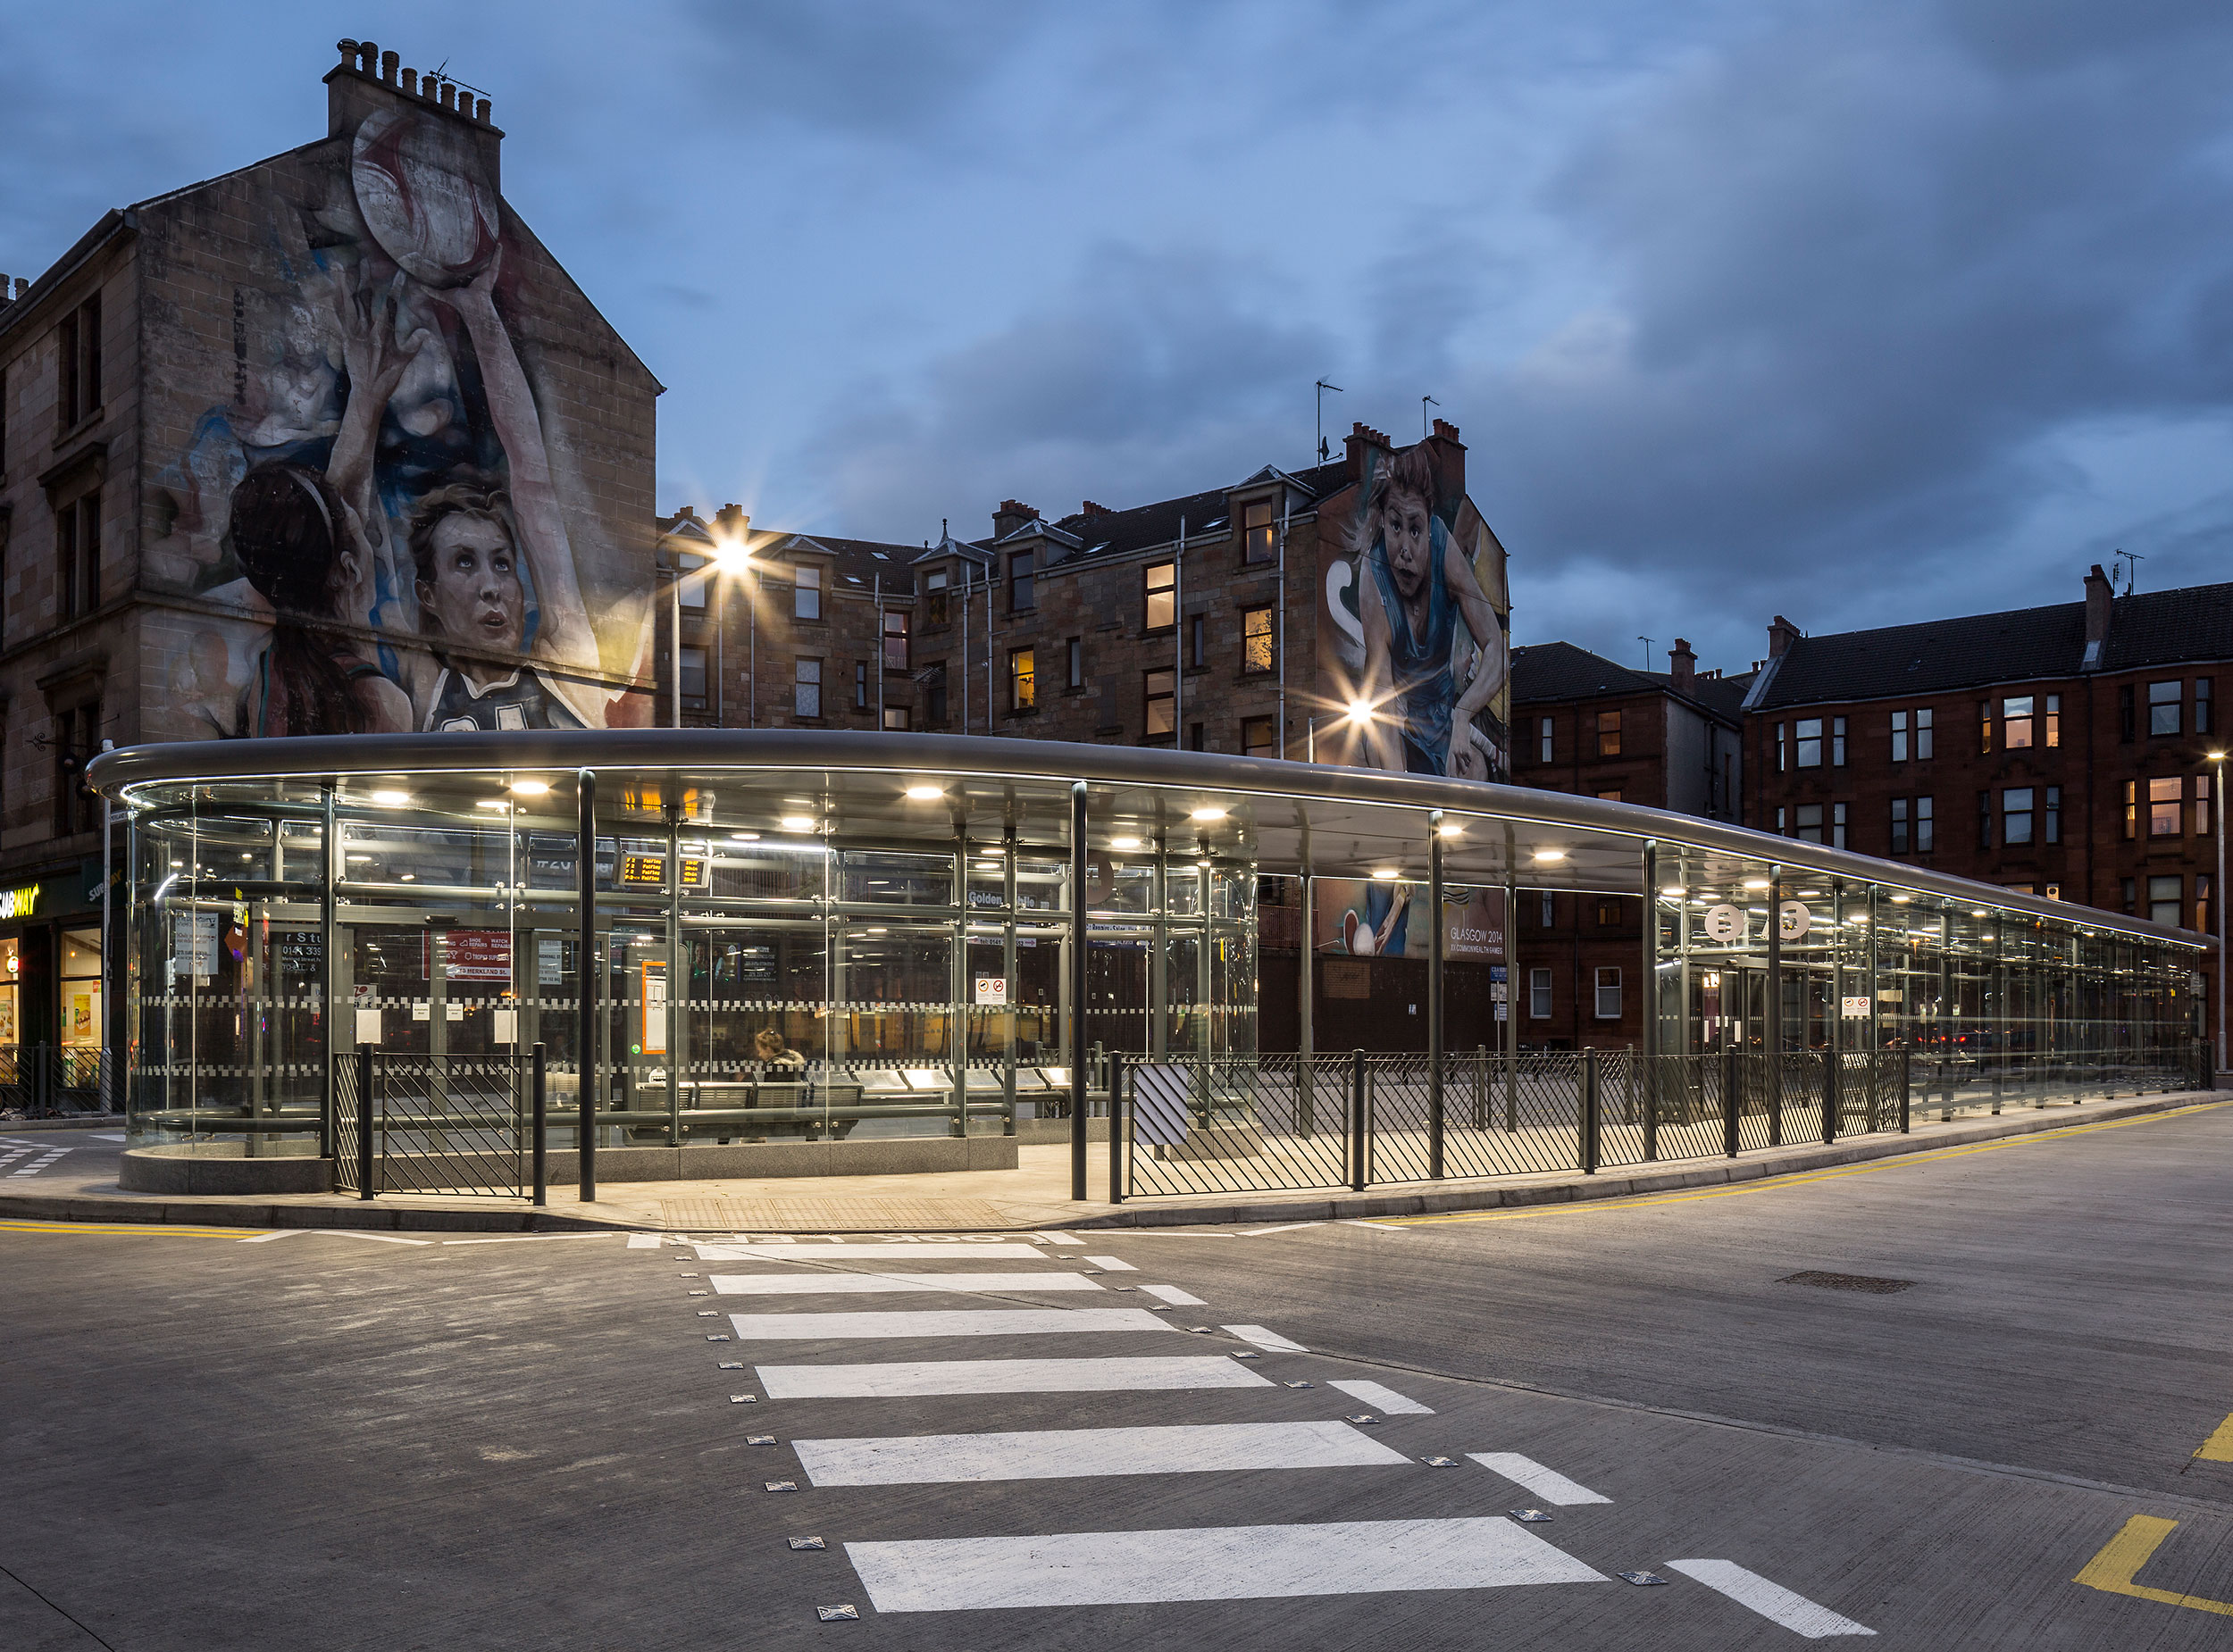 A well known spot for Glaswegians and a huge transport hub for the city, Partick Interchange a thorough refurbishment to create an increased number of bus stances to accommodate increasing passenger numbers.